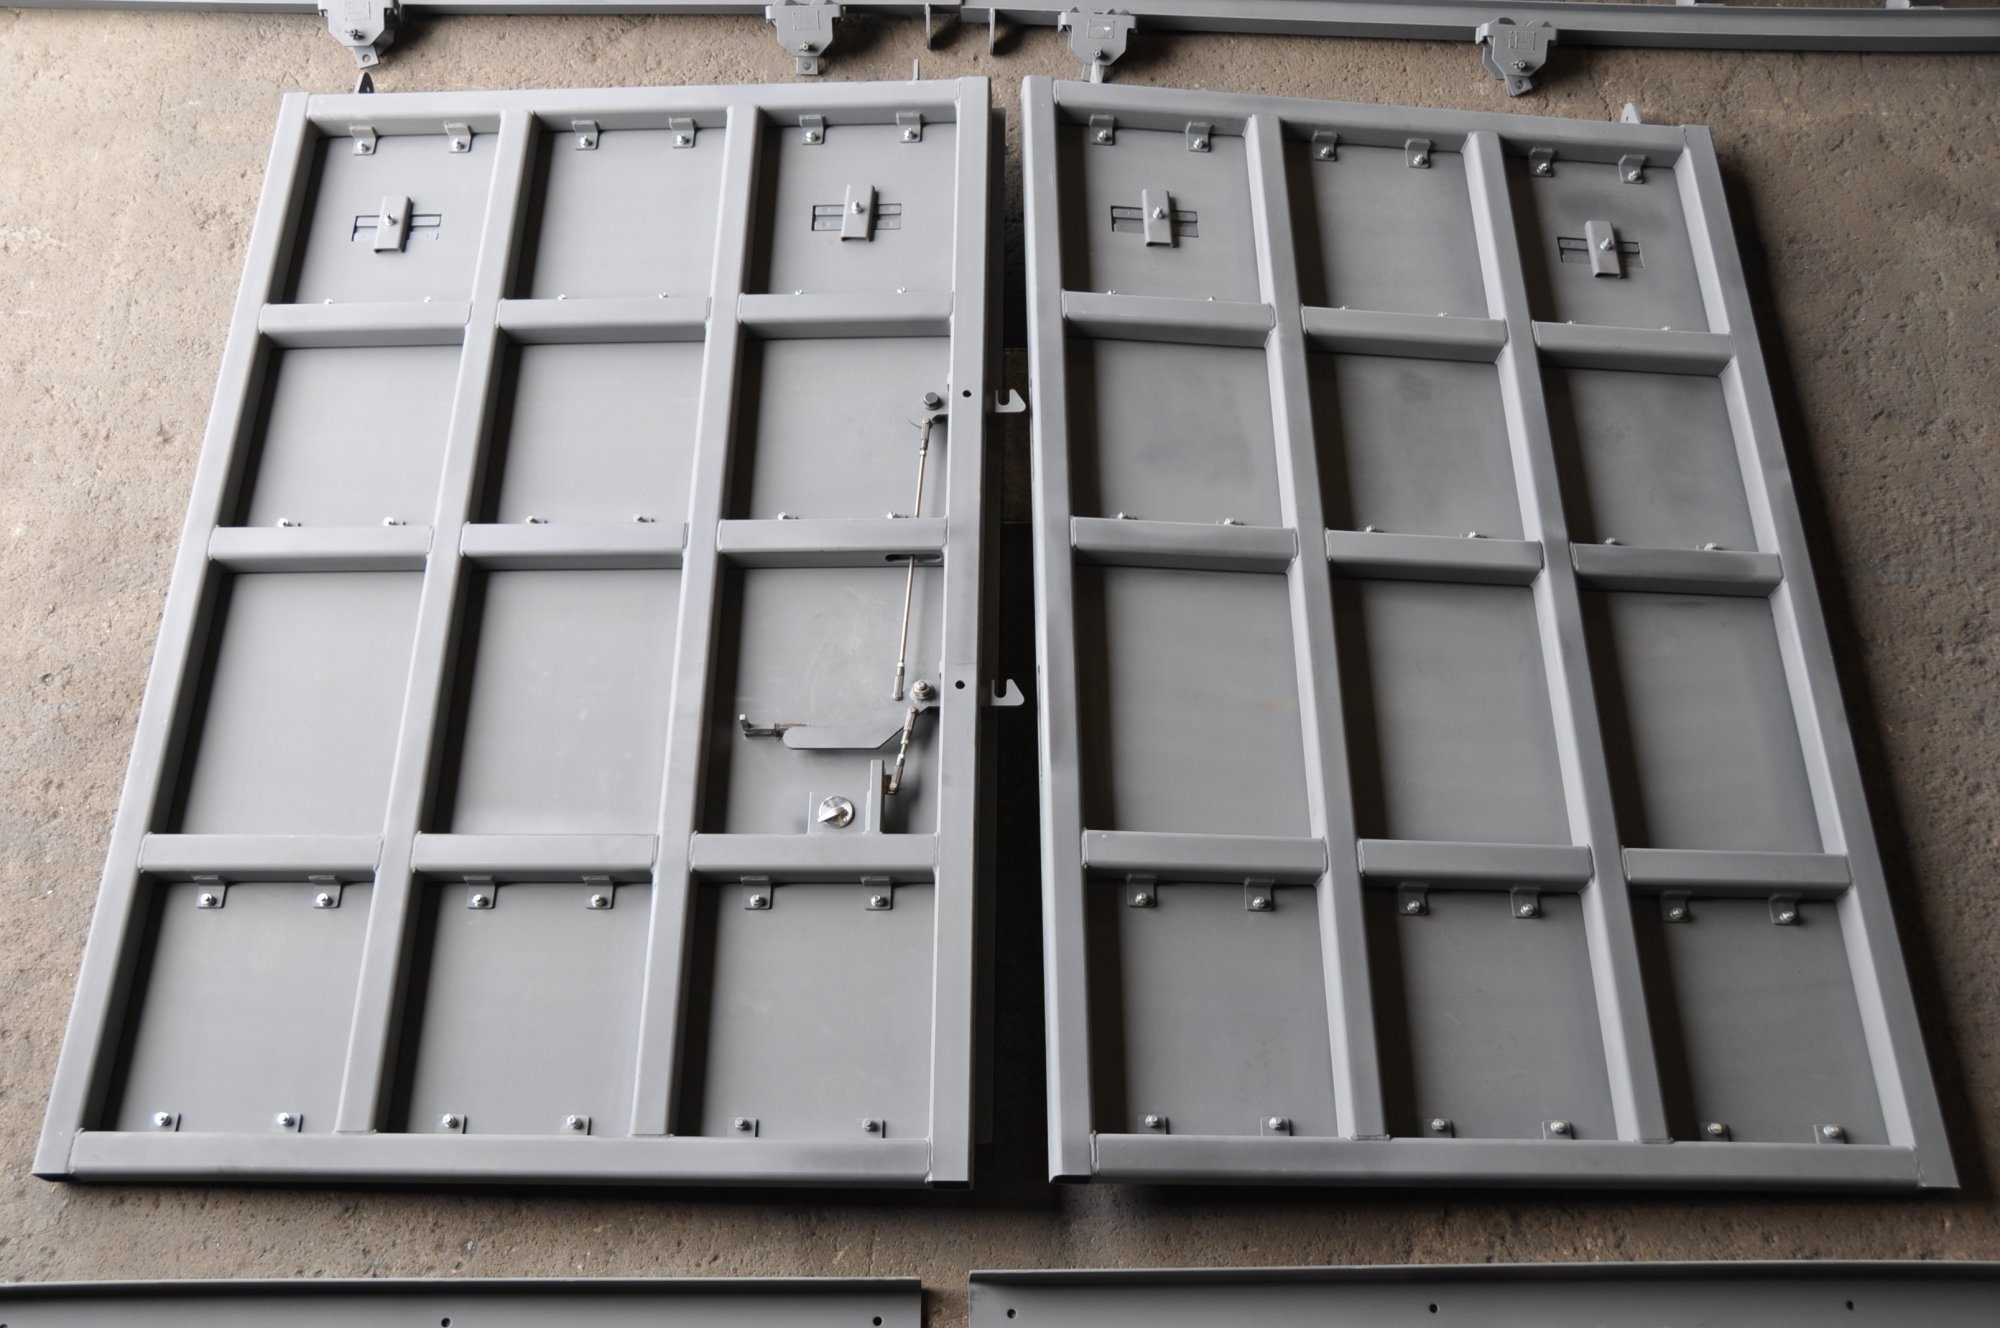 Ballistic Doors For Hardened Shelters